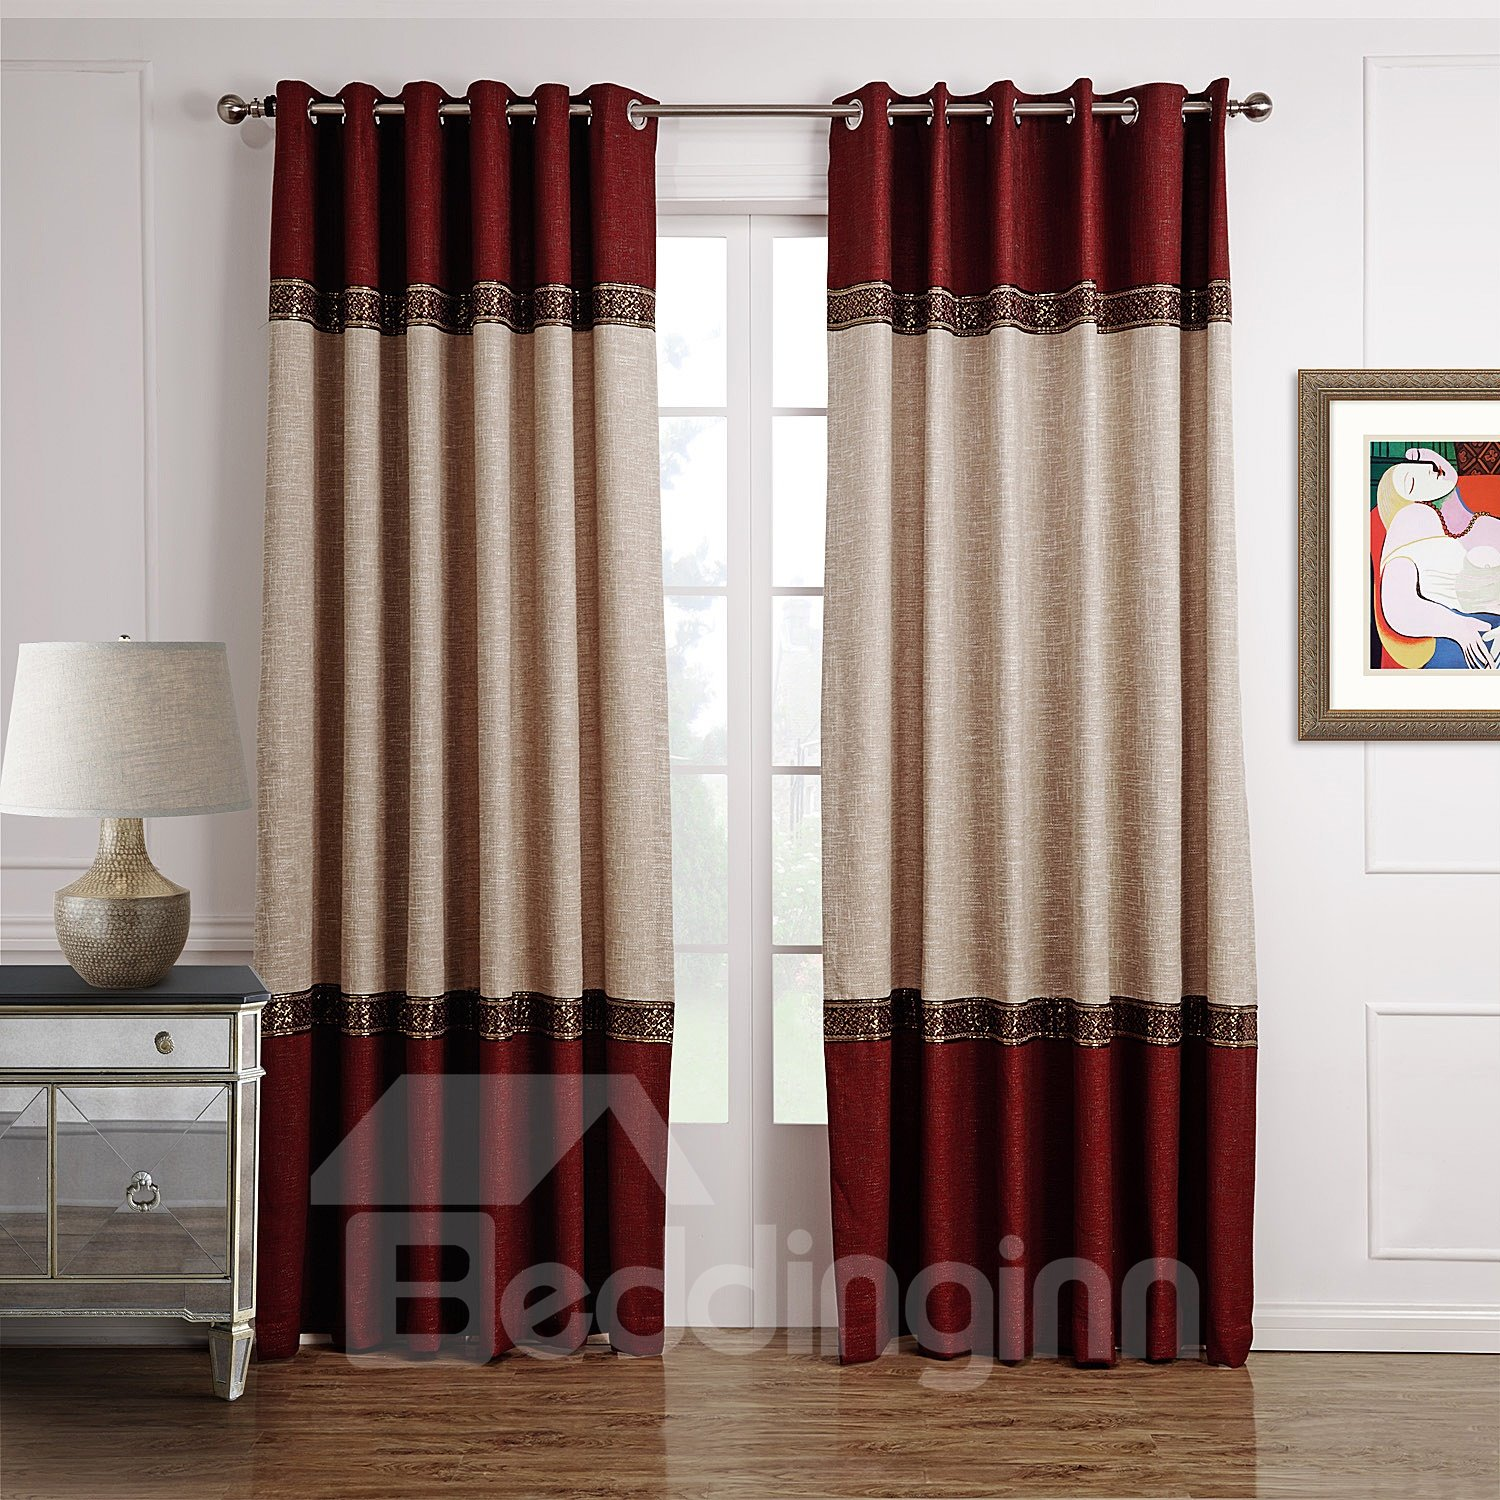 Hot selling fantastic joint color decorative border design Beige curtains